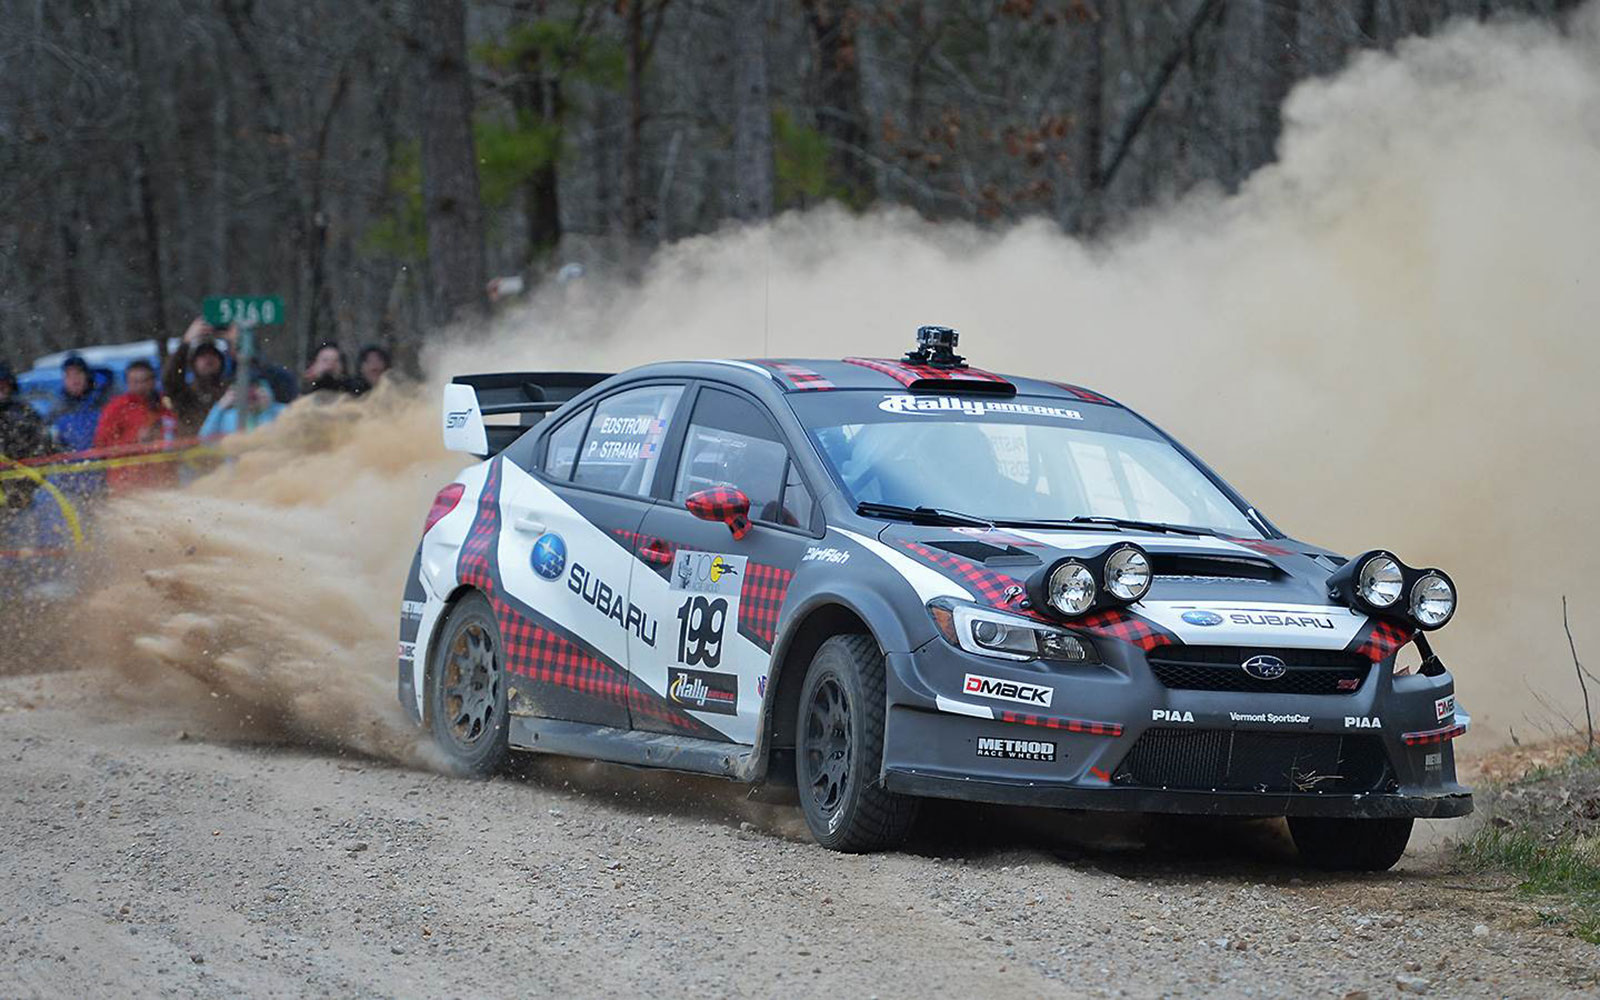 Subaru Rally Team USA – DIrally.com